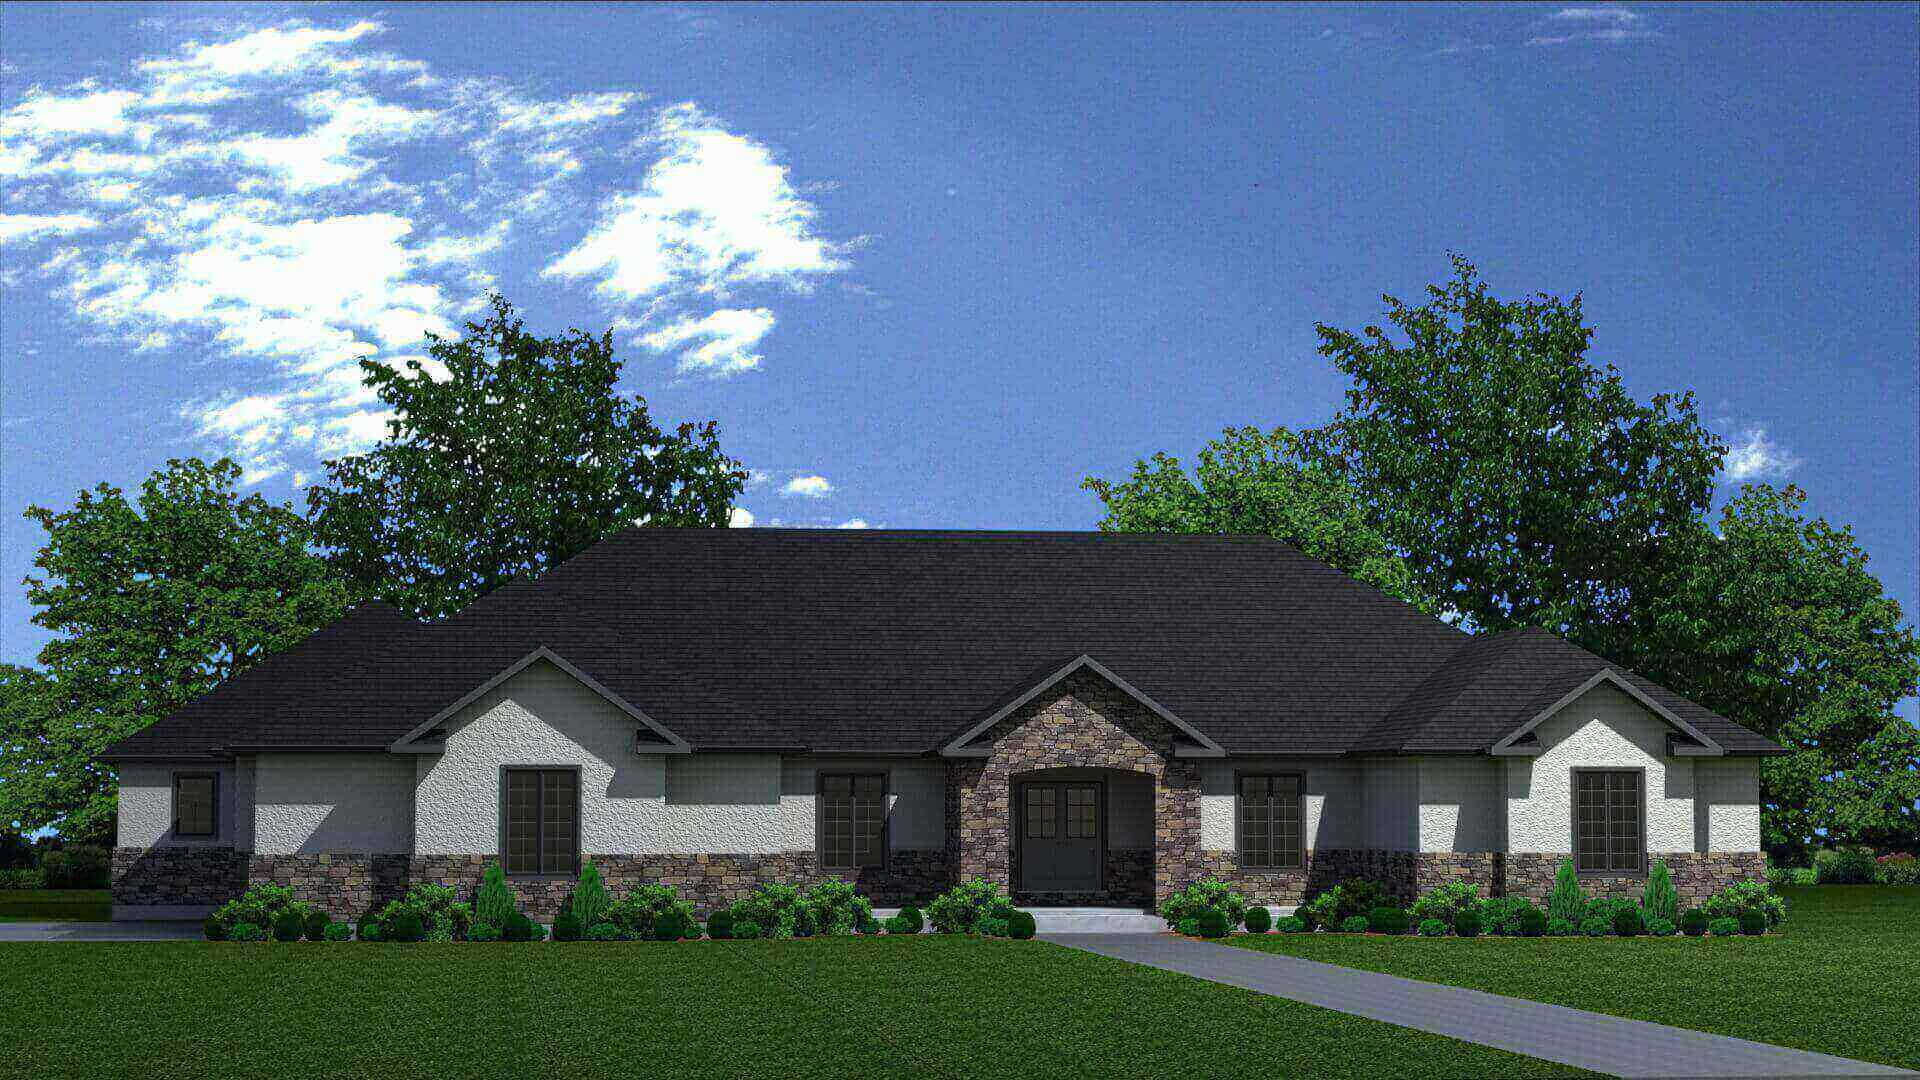 5082 sq.ft. timber mart house 3 bed 4 bath exterior render